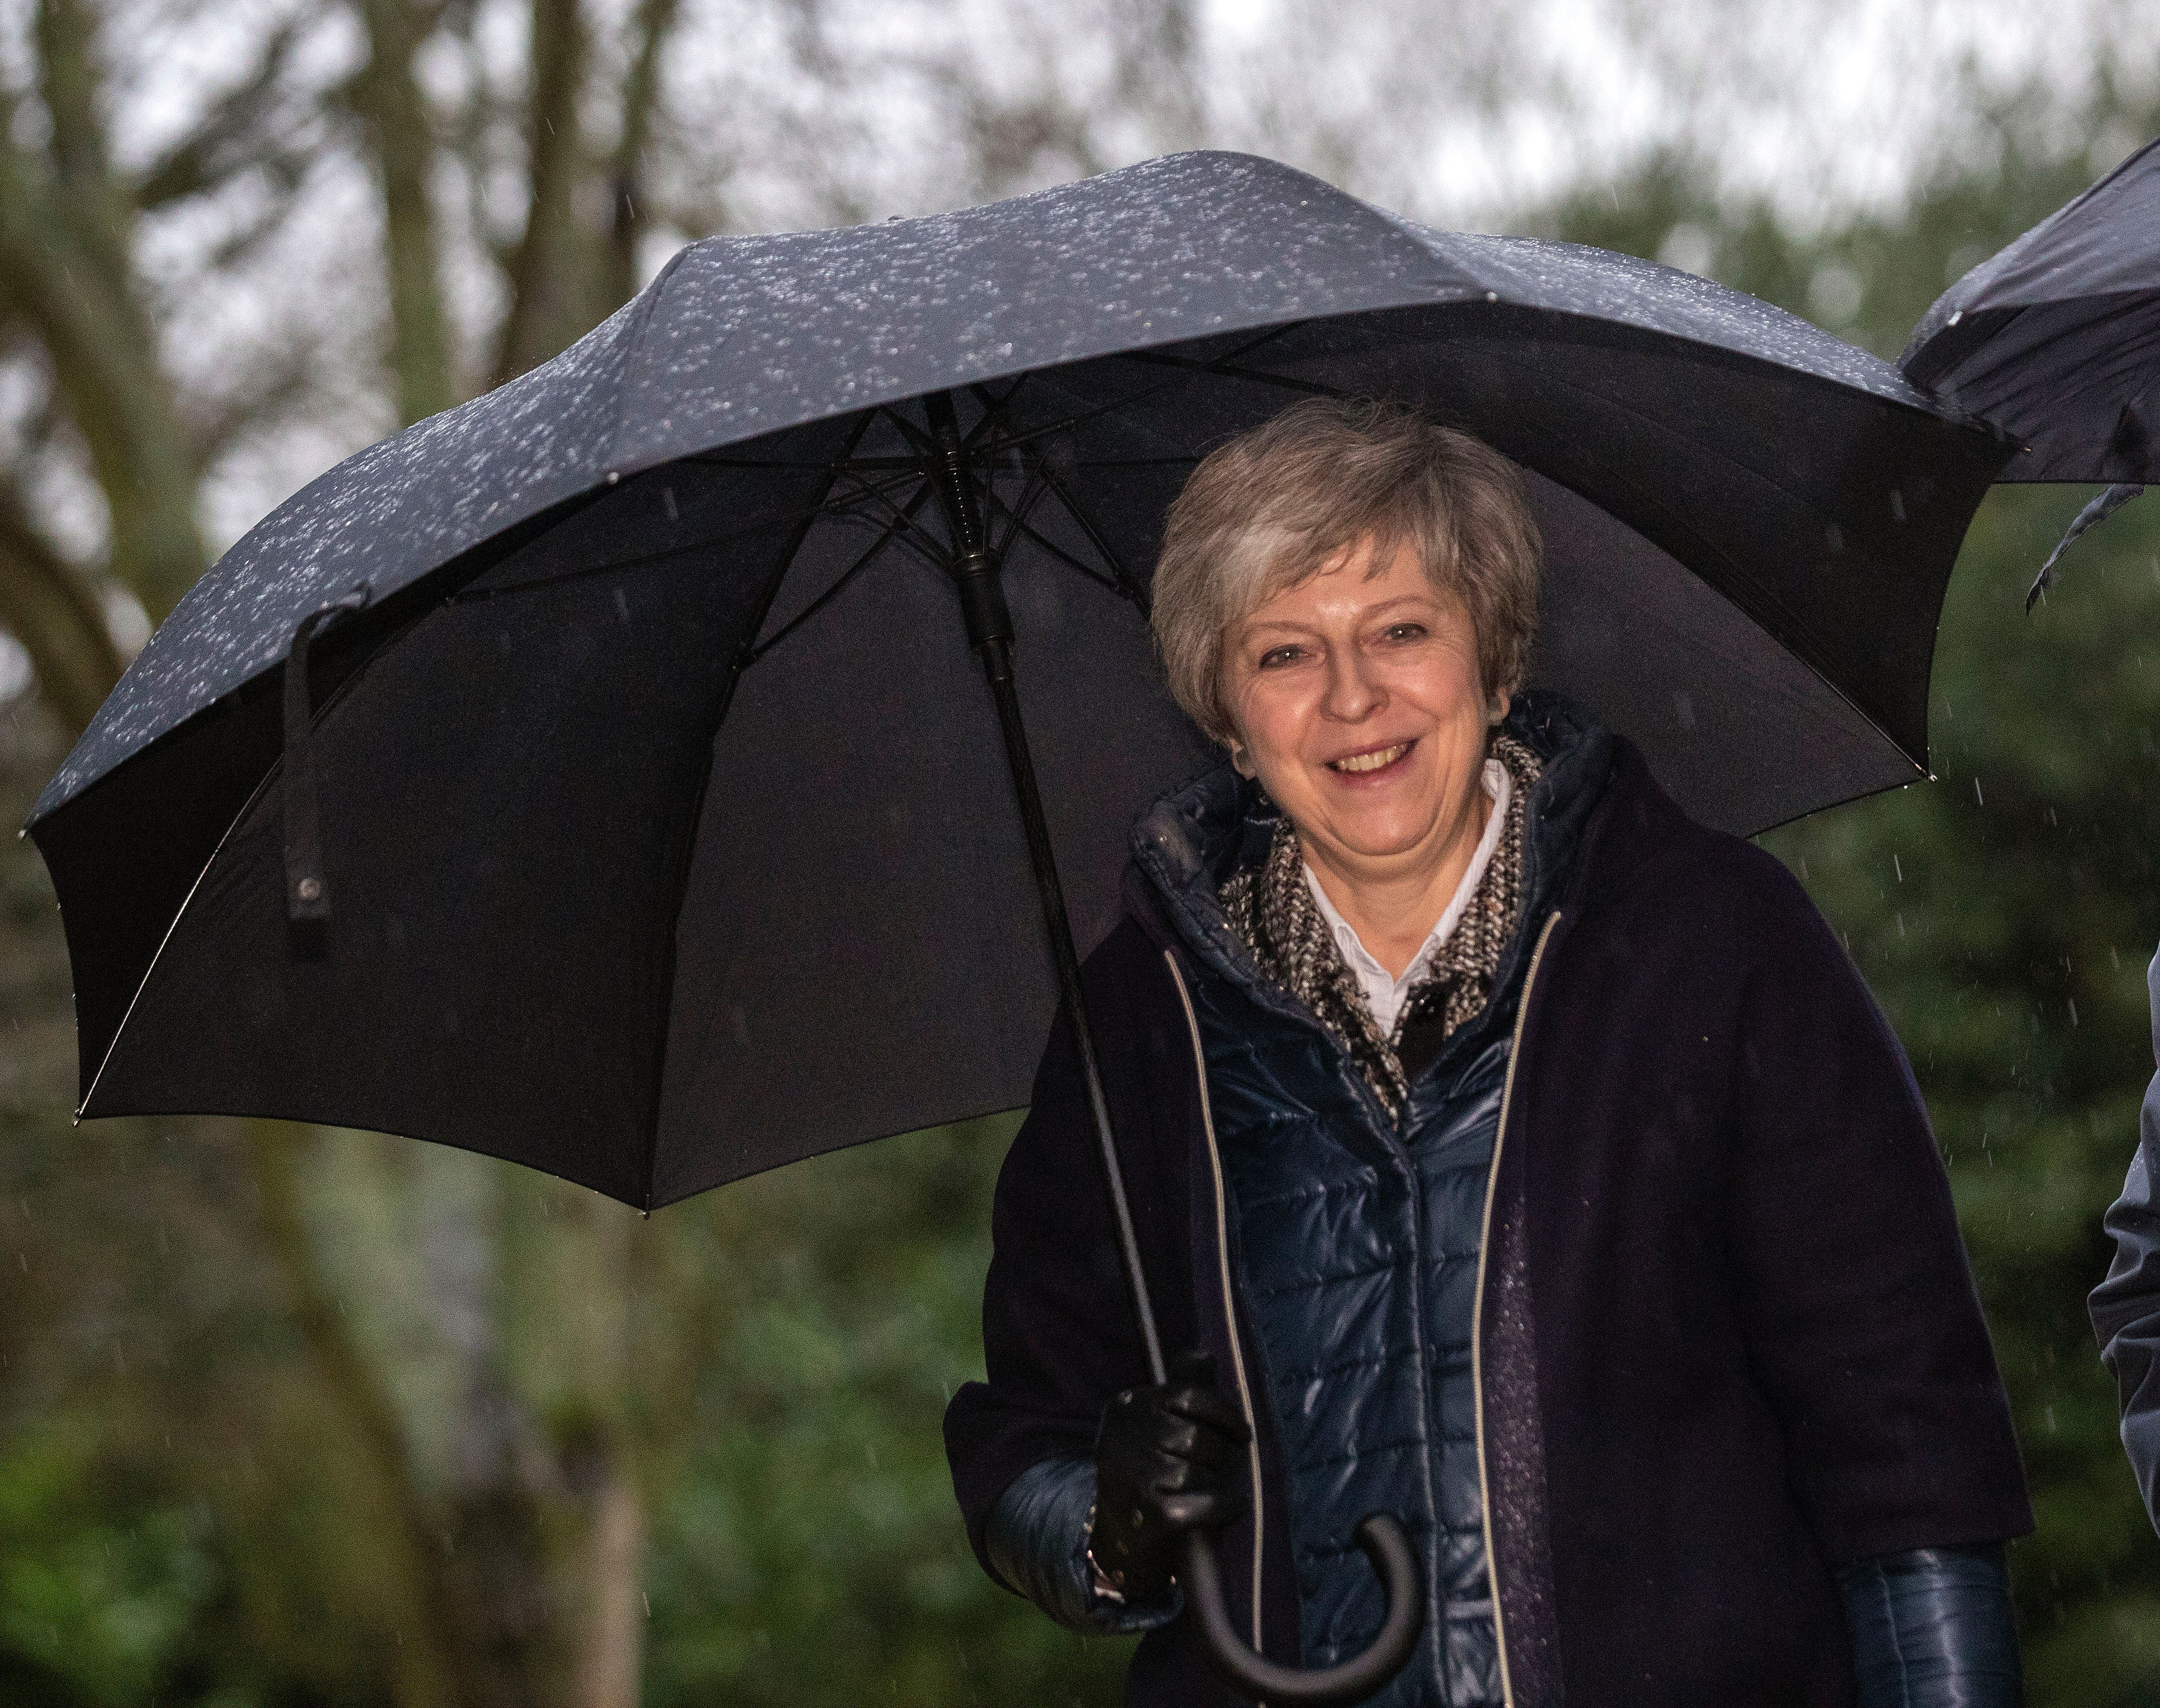 Brexit Committee Savages Theresa May's Deal In Yet Another Blow For